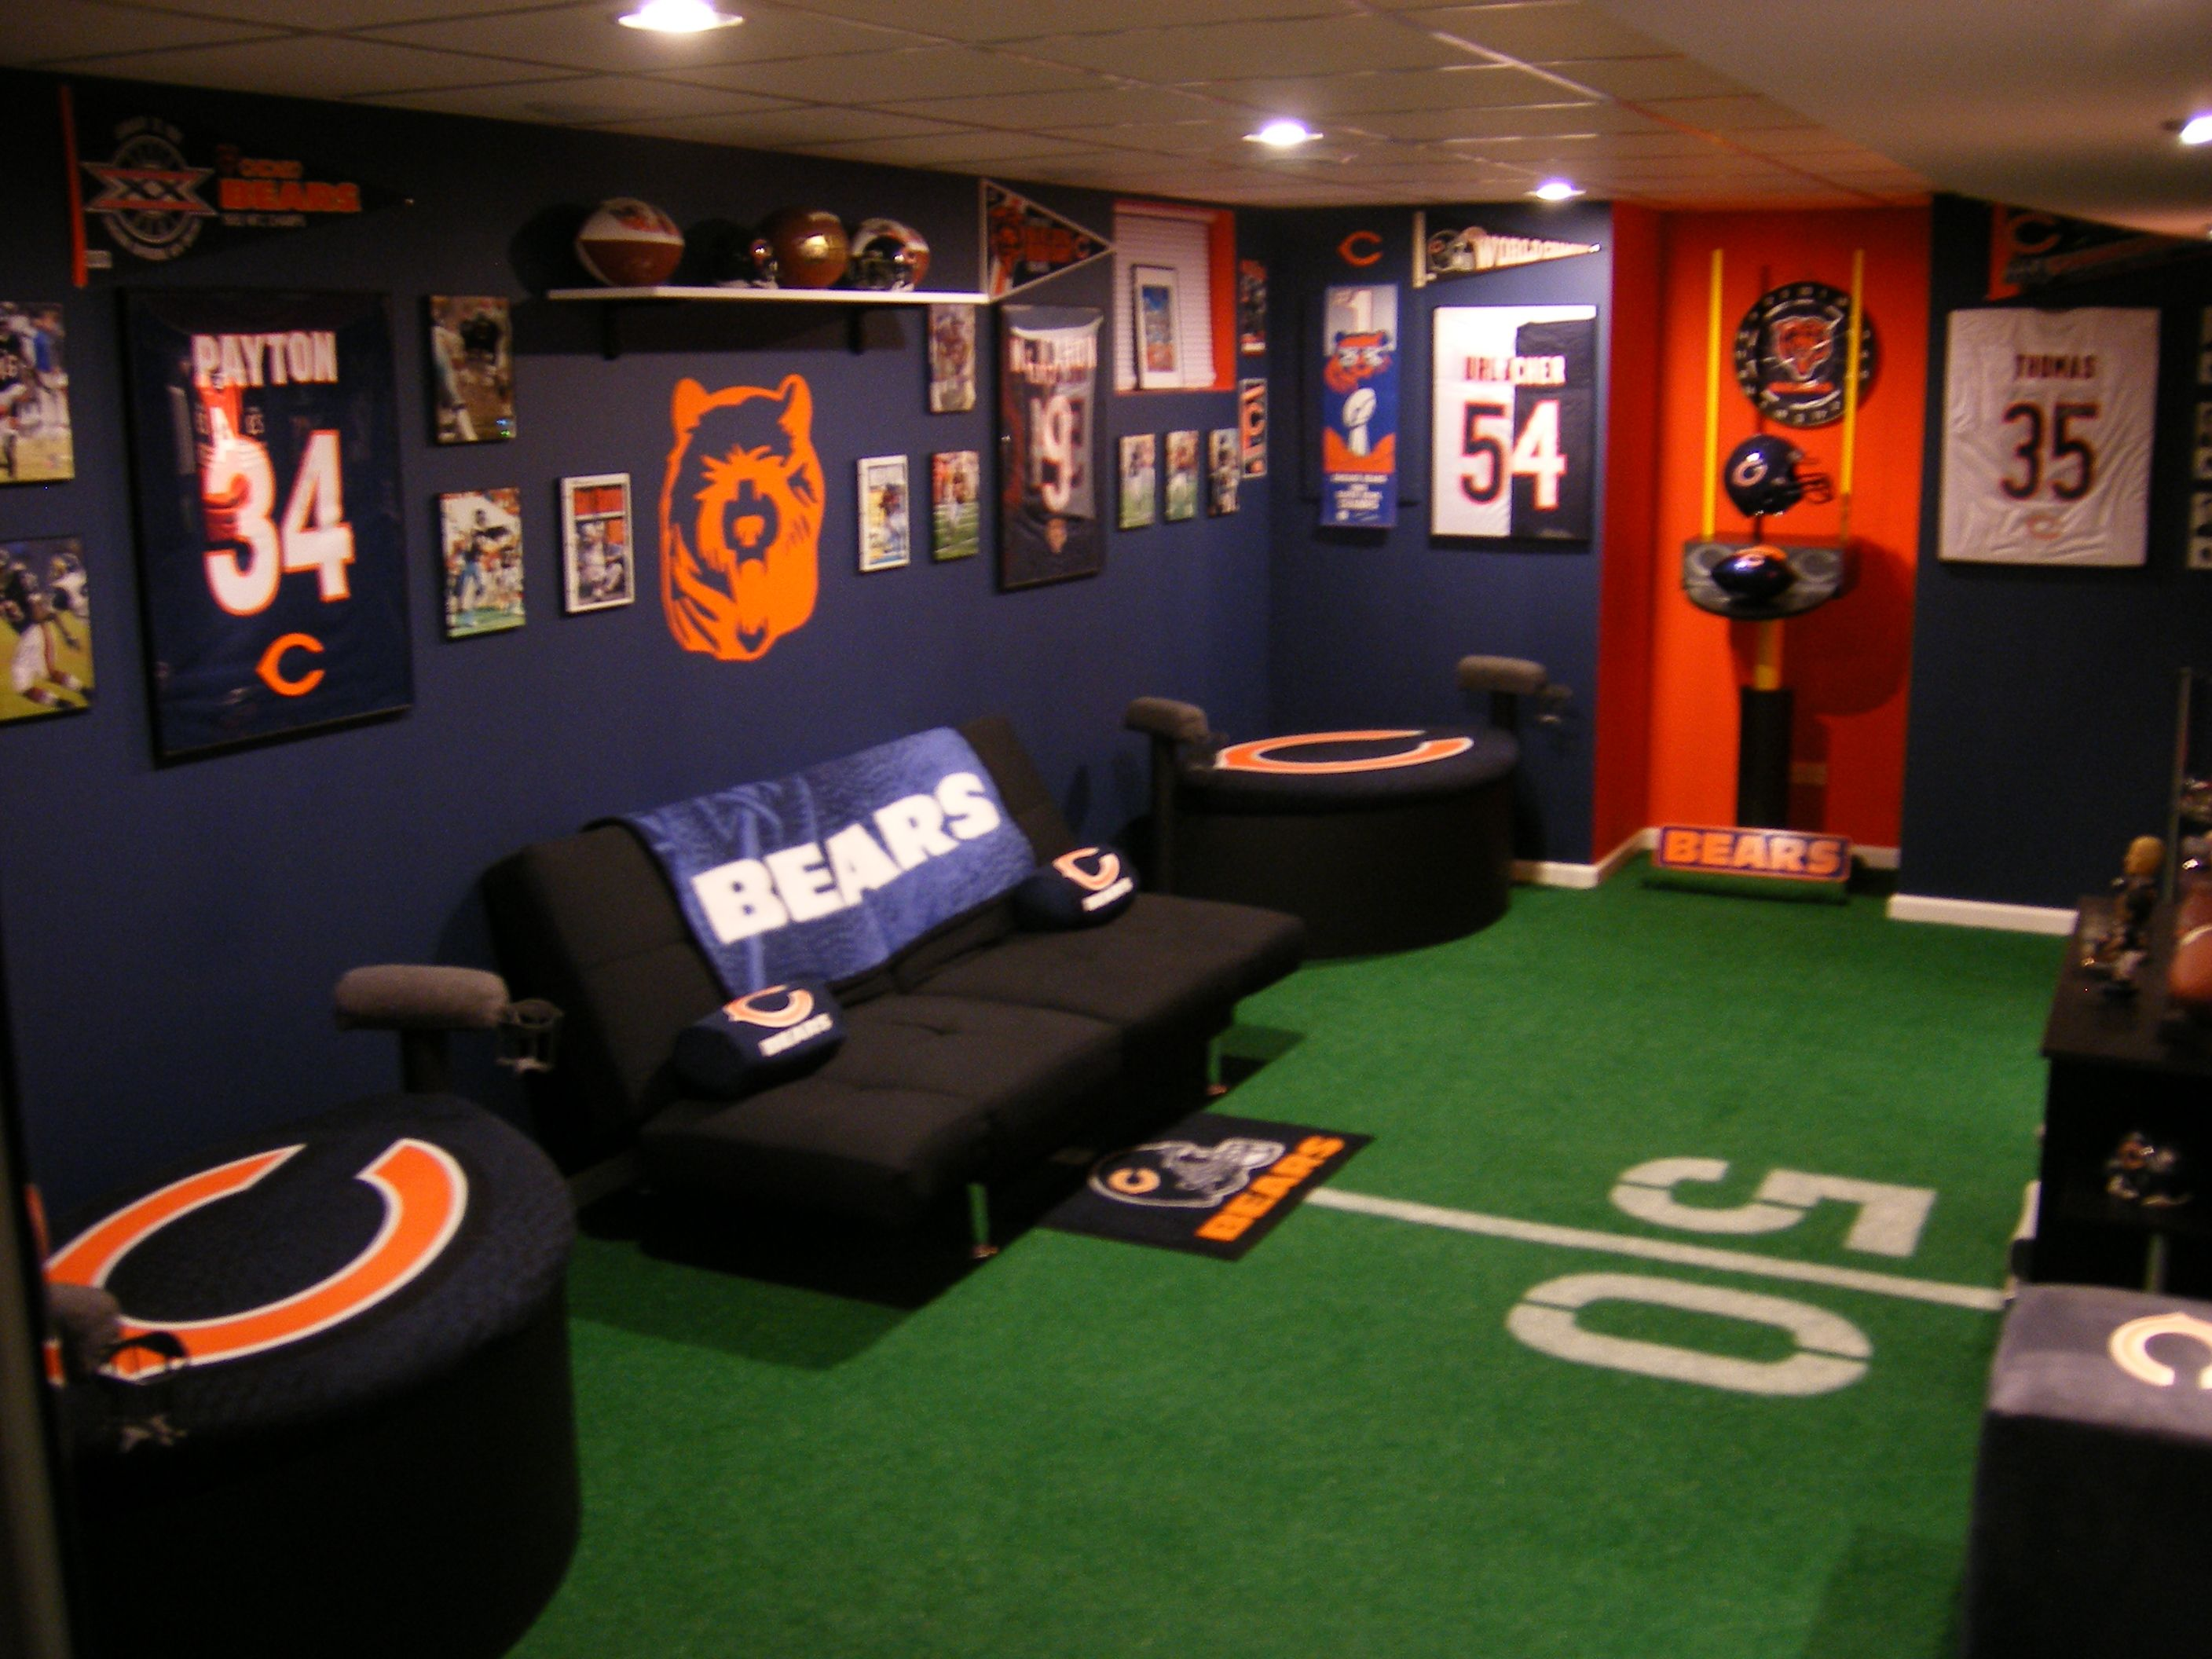 Man Cave Show Rosedale : Cool man cave ideas thread post pics of your